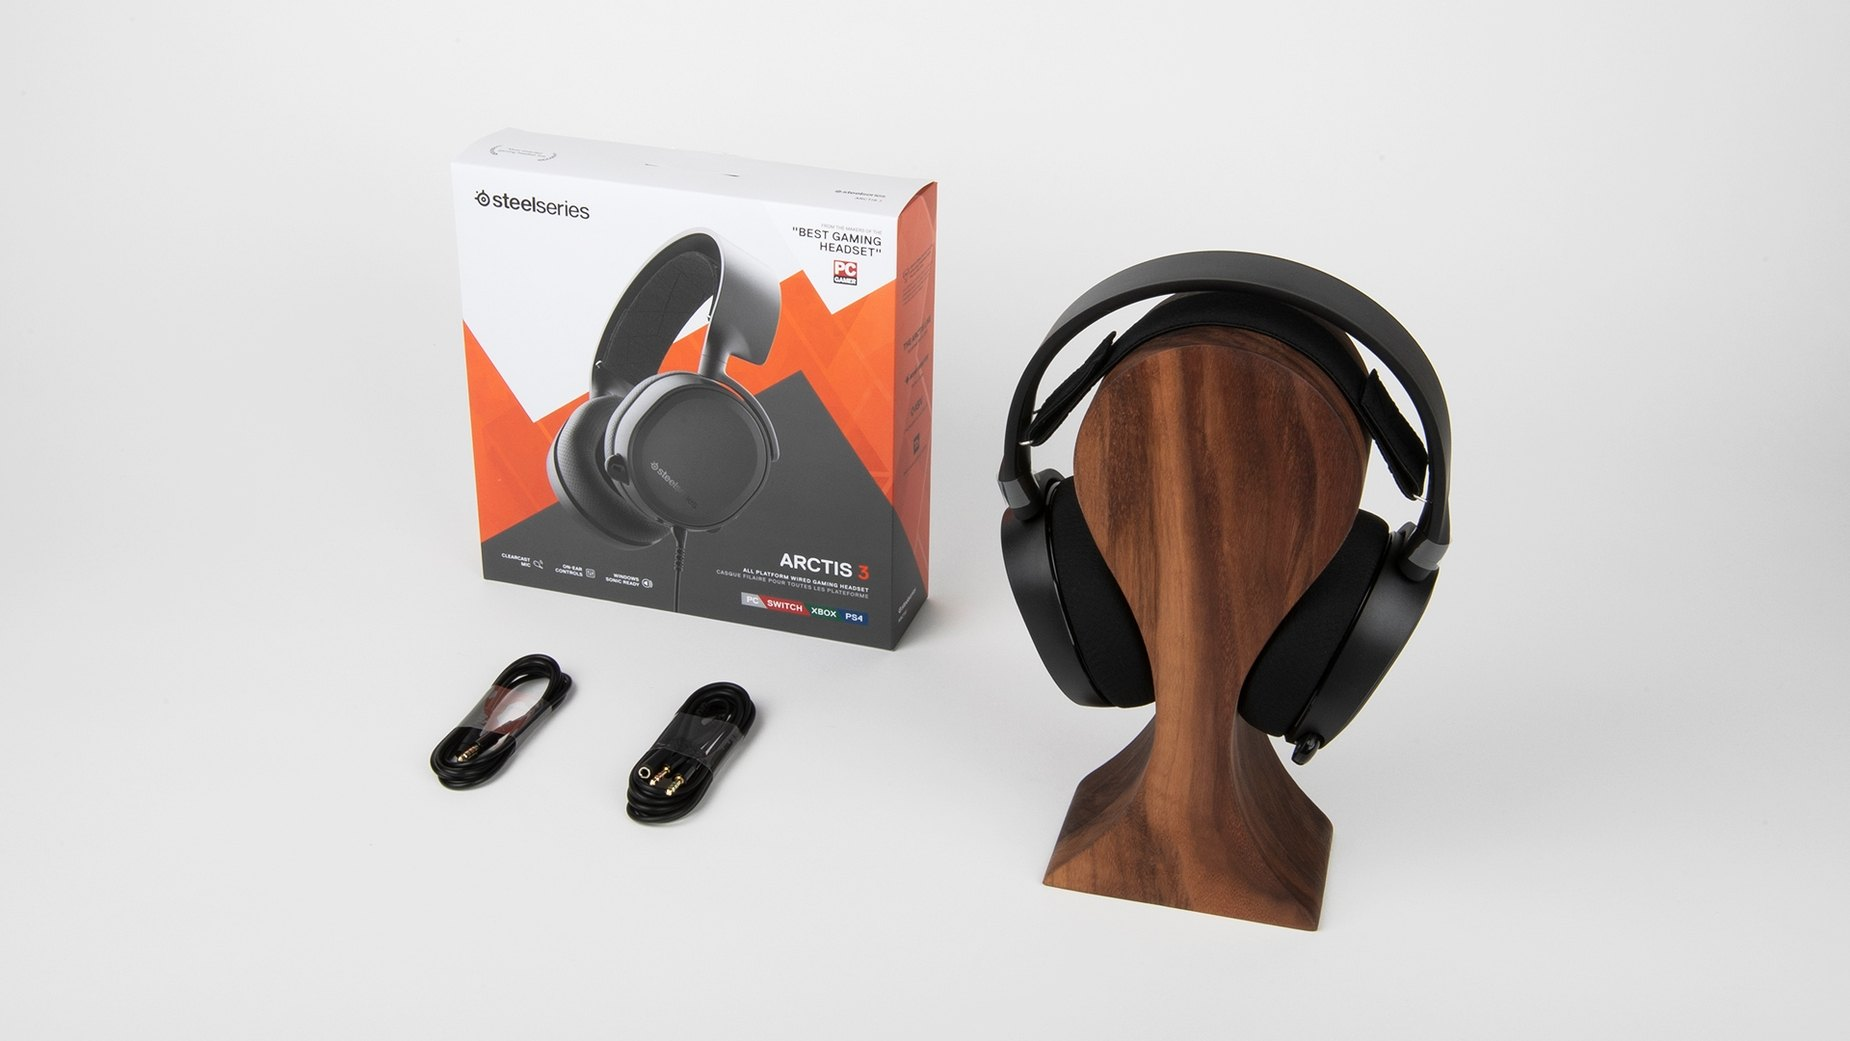 Full box and packaging for Arctis 3 - Black gaming headset